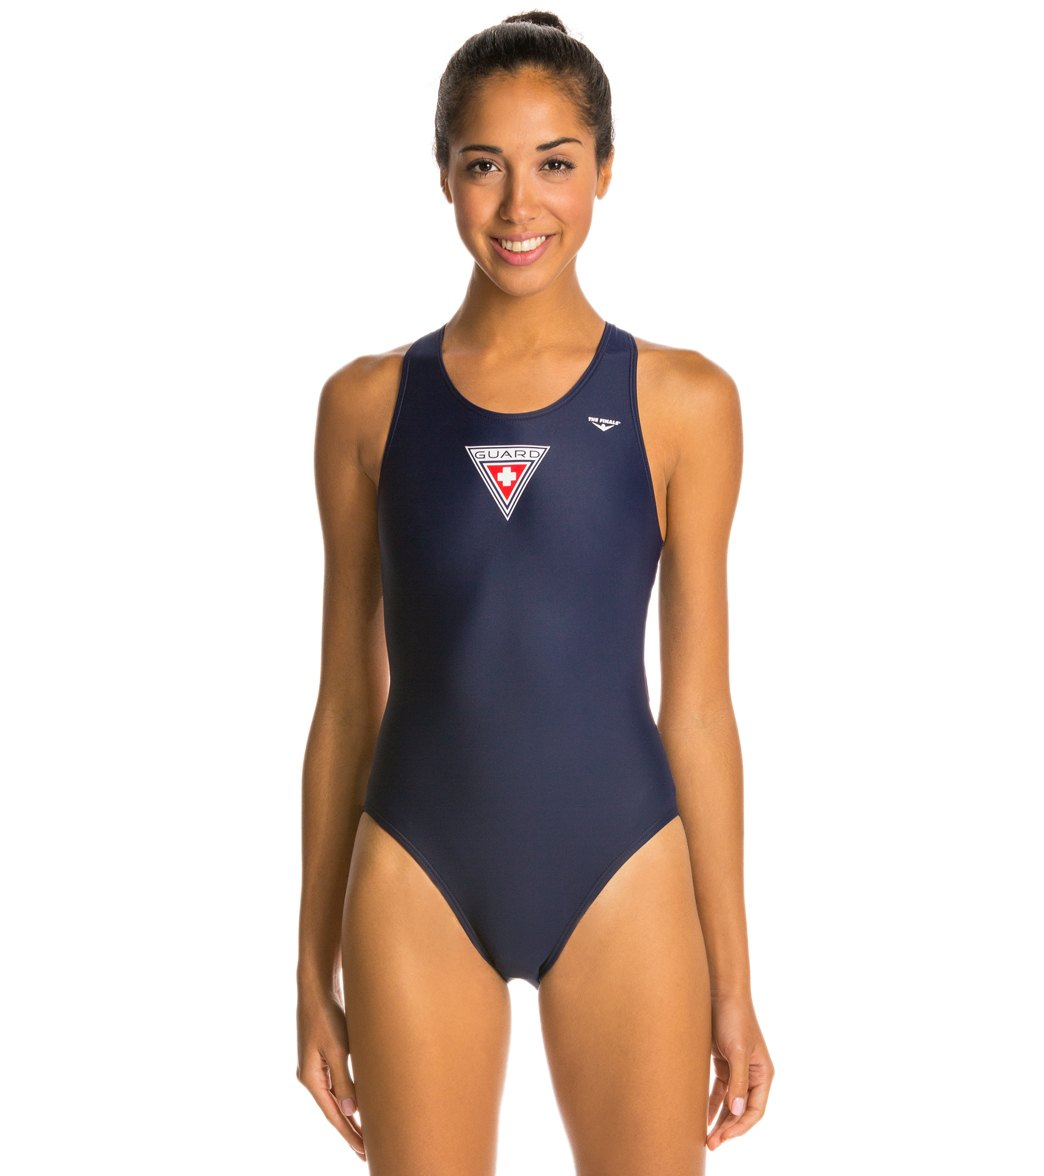 83725d090bb The Finals Lifeguard Super V-Back One Piece Swimsuit at SwimOutlet.com